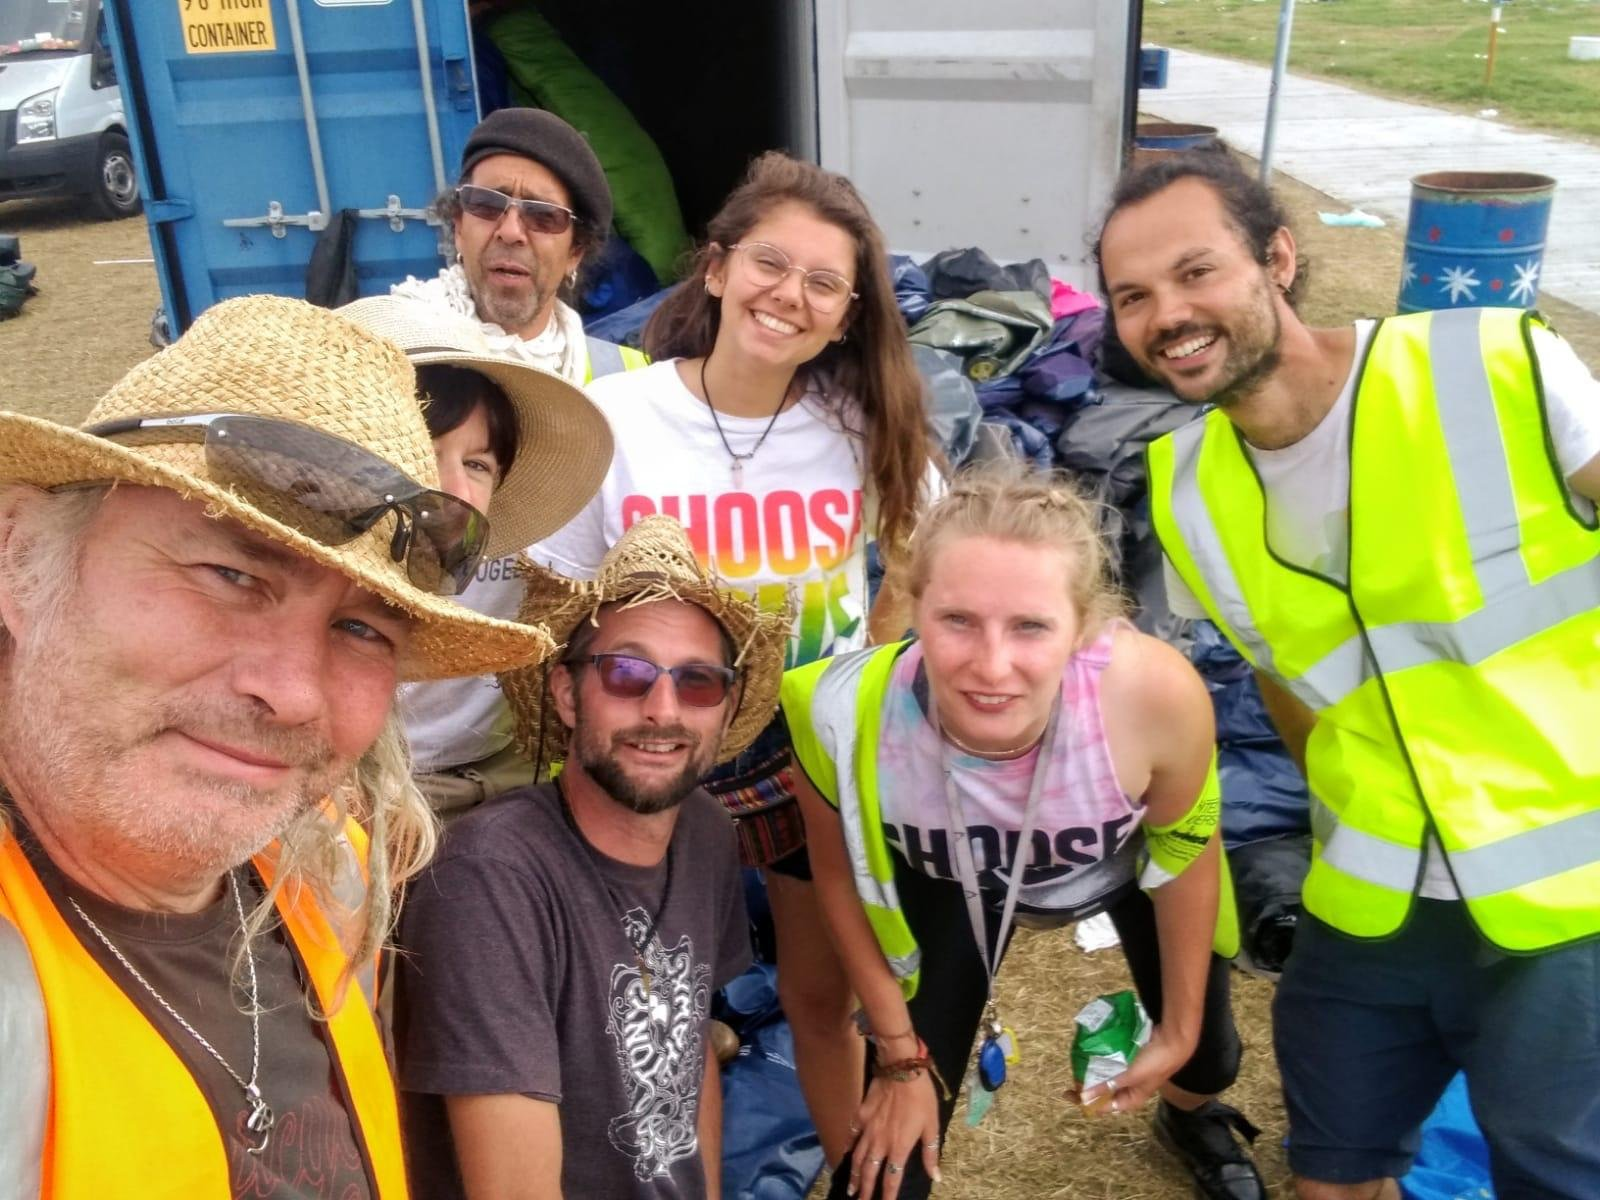 These Charities Found a Genius Way to Use Festival Leftovers to Help Refugees